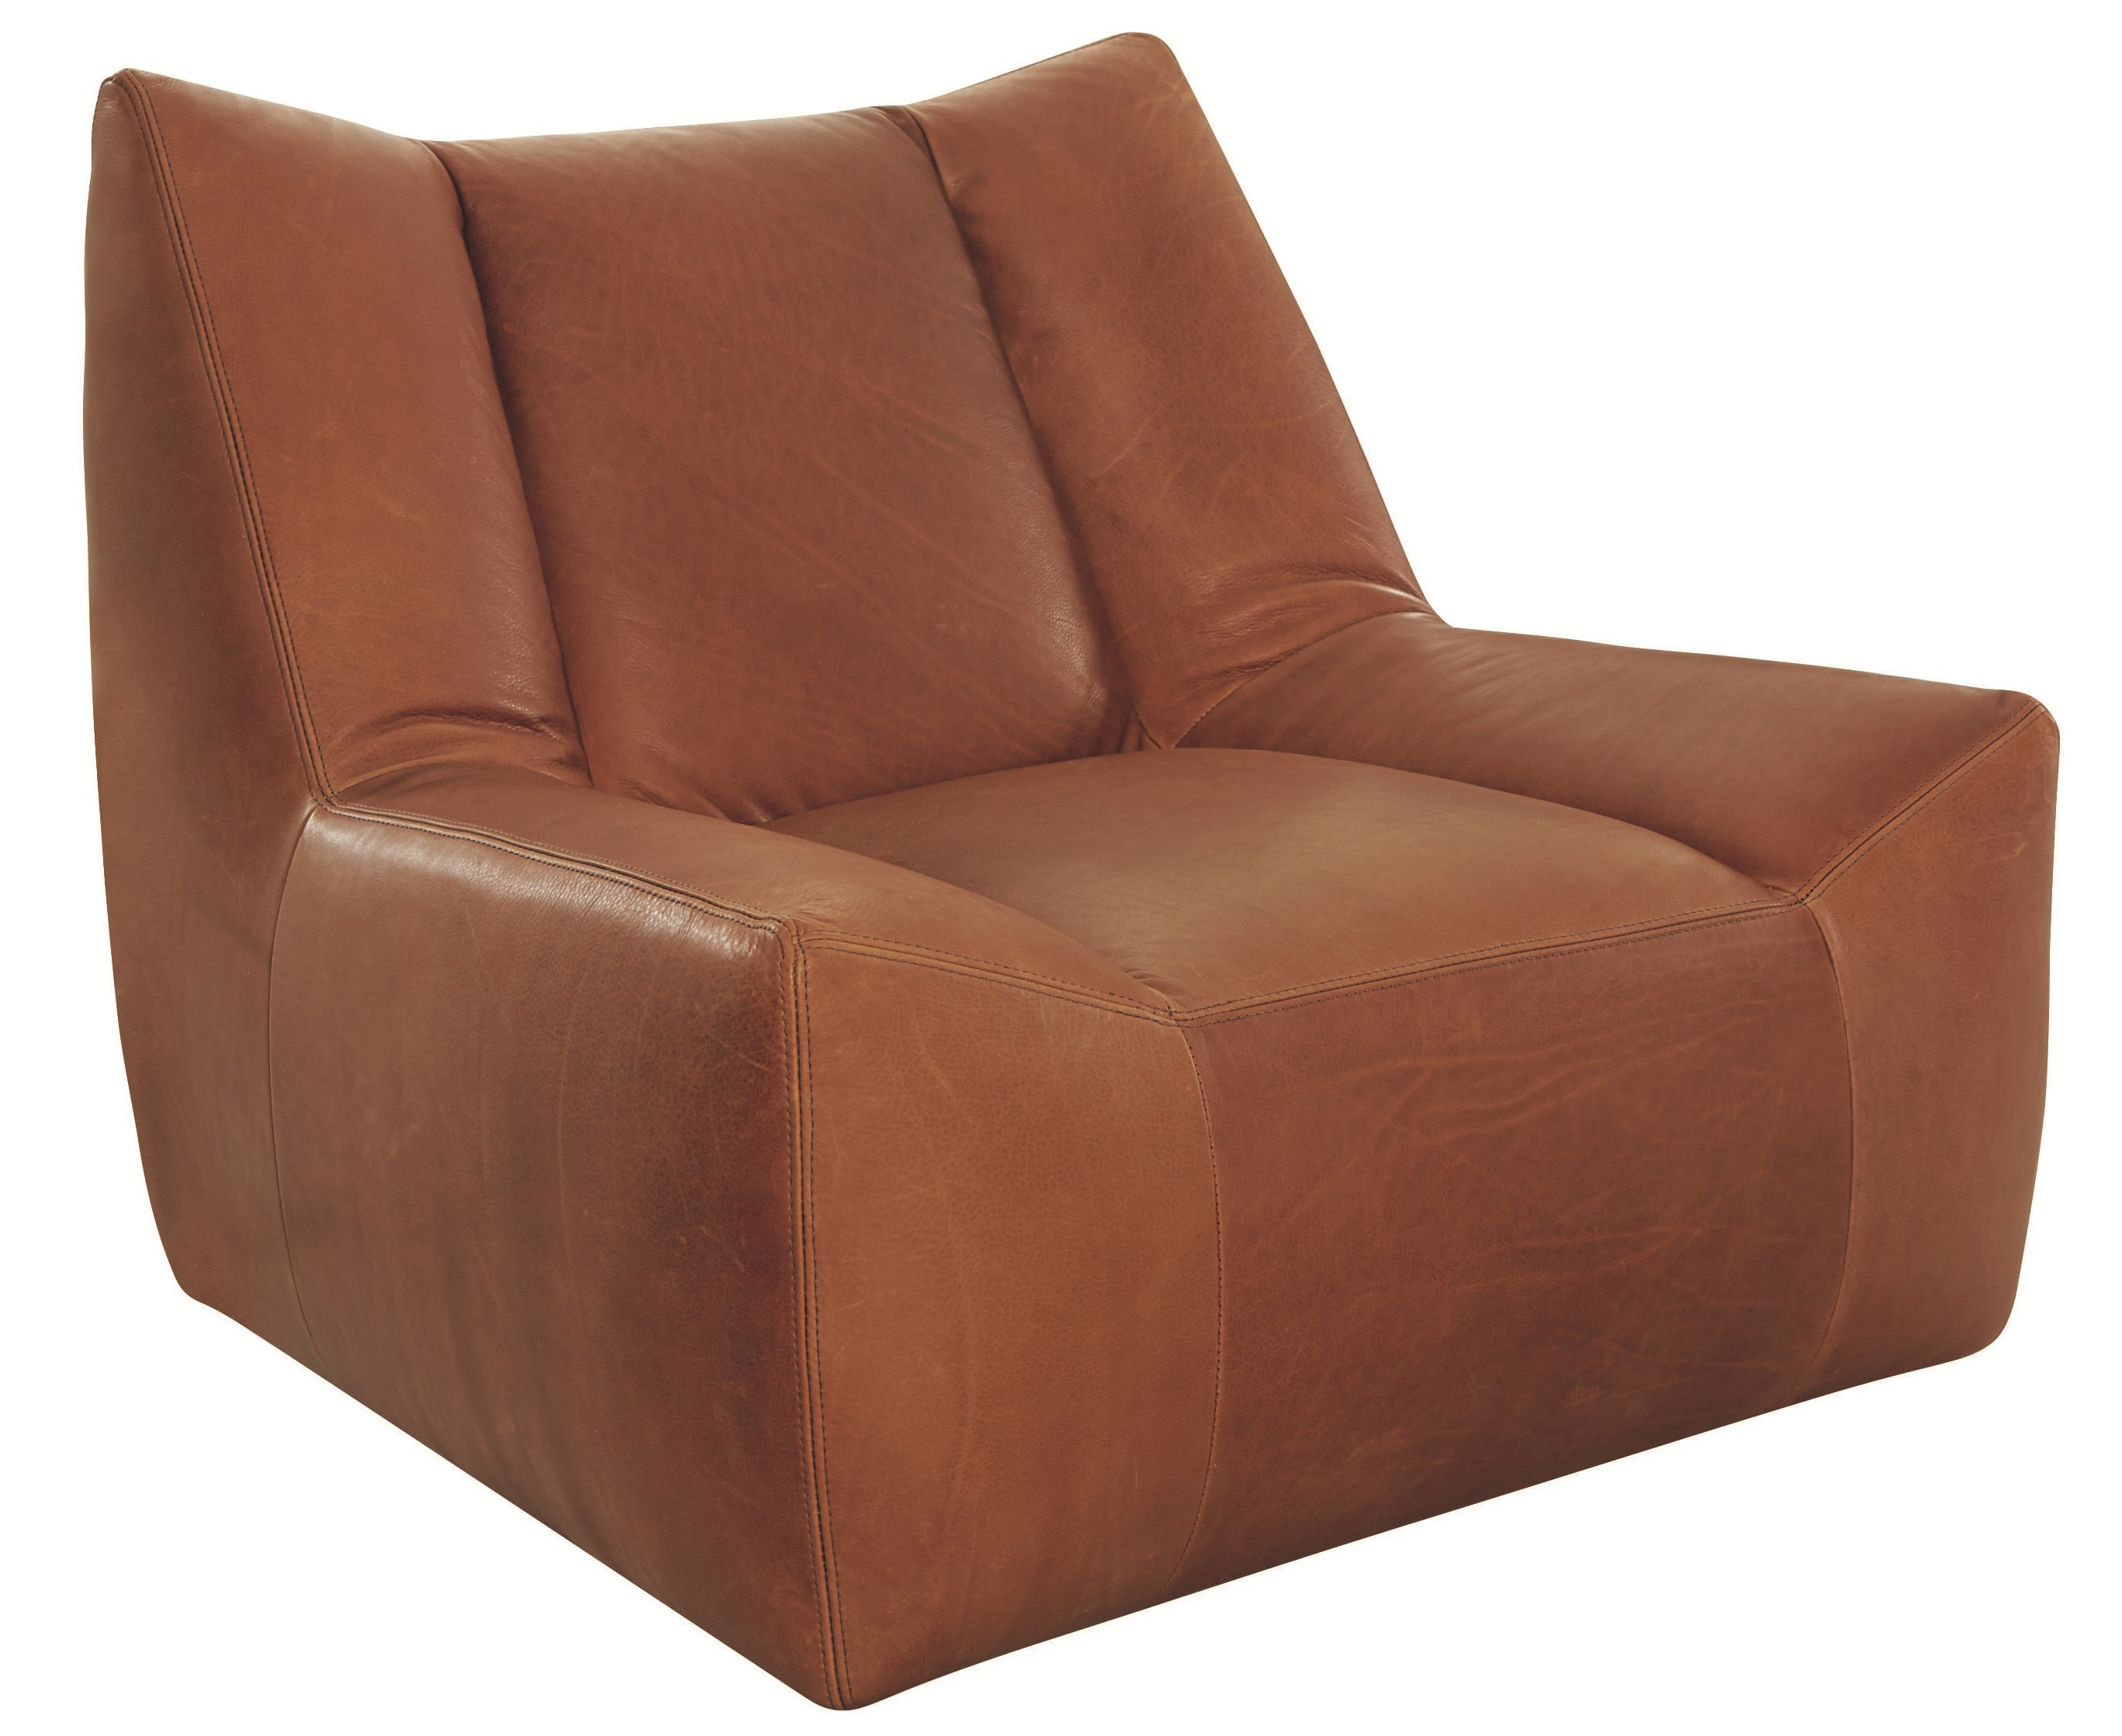 Lee Industries Leather Chair L1147 01